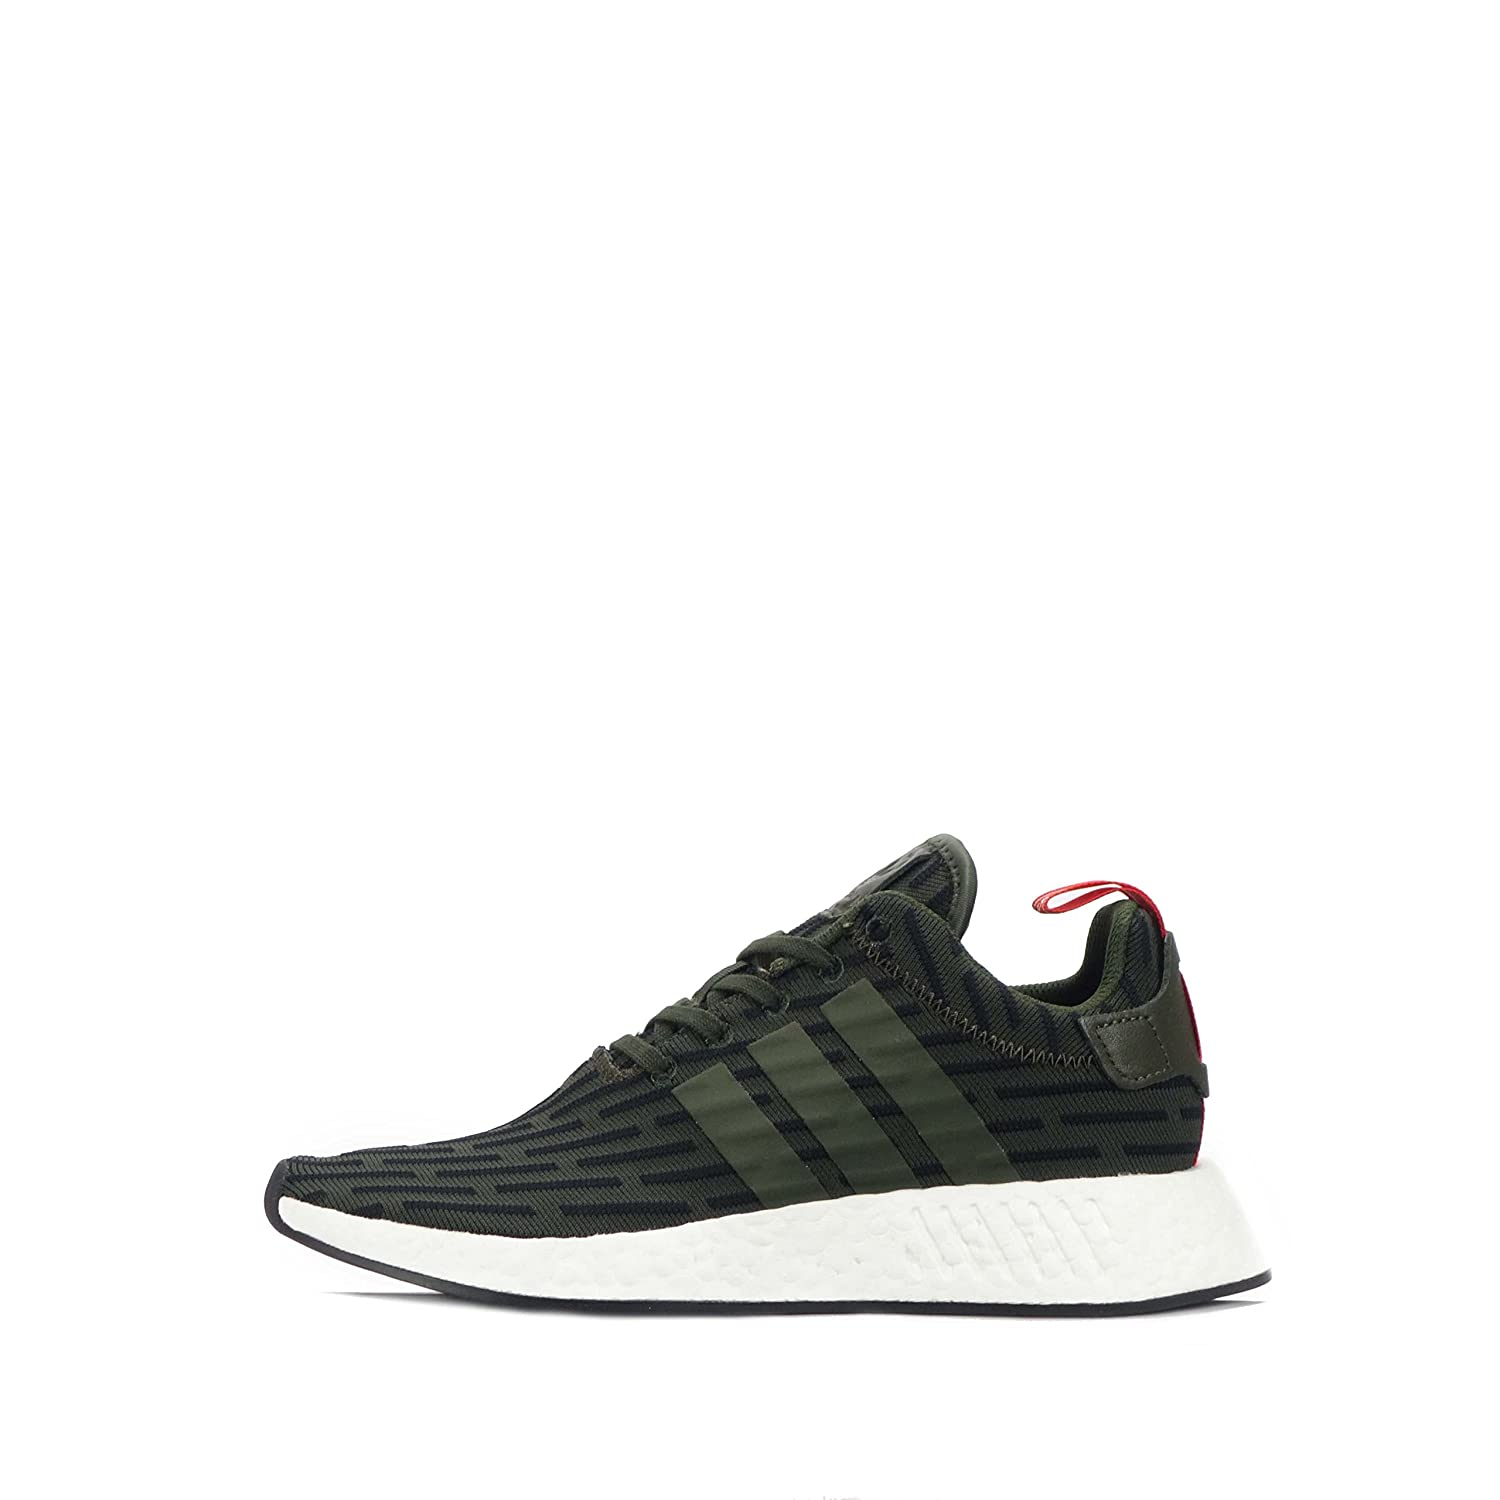 adidas Originals NMD_R2 Mens Running Trainers Sneakers B074KWL3JH 8.5 D(M) US|Green Black White By2500